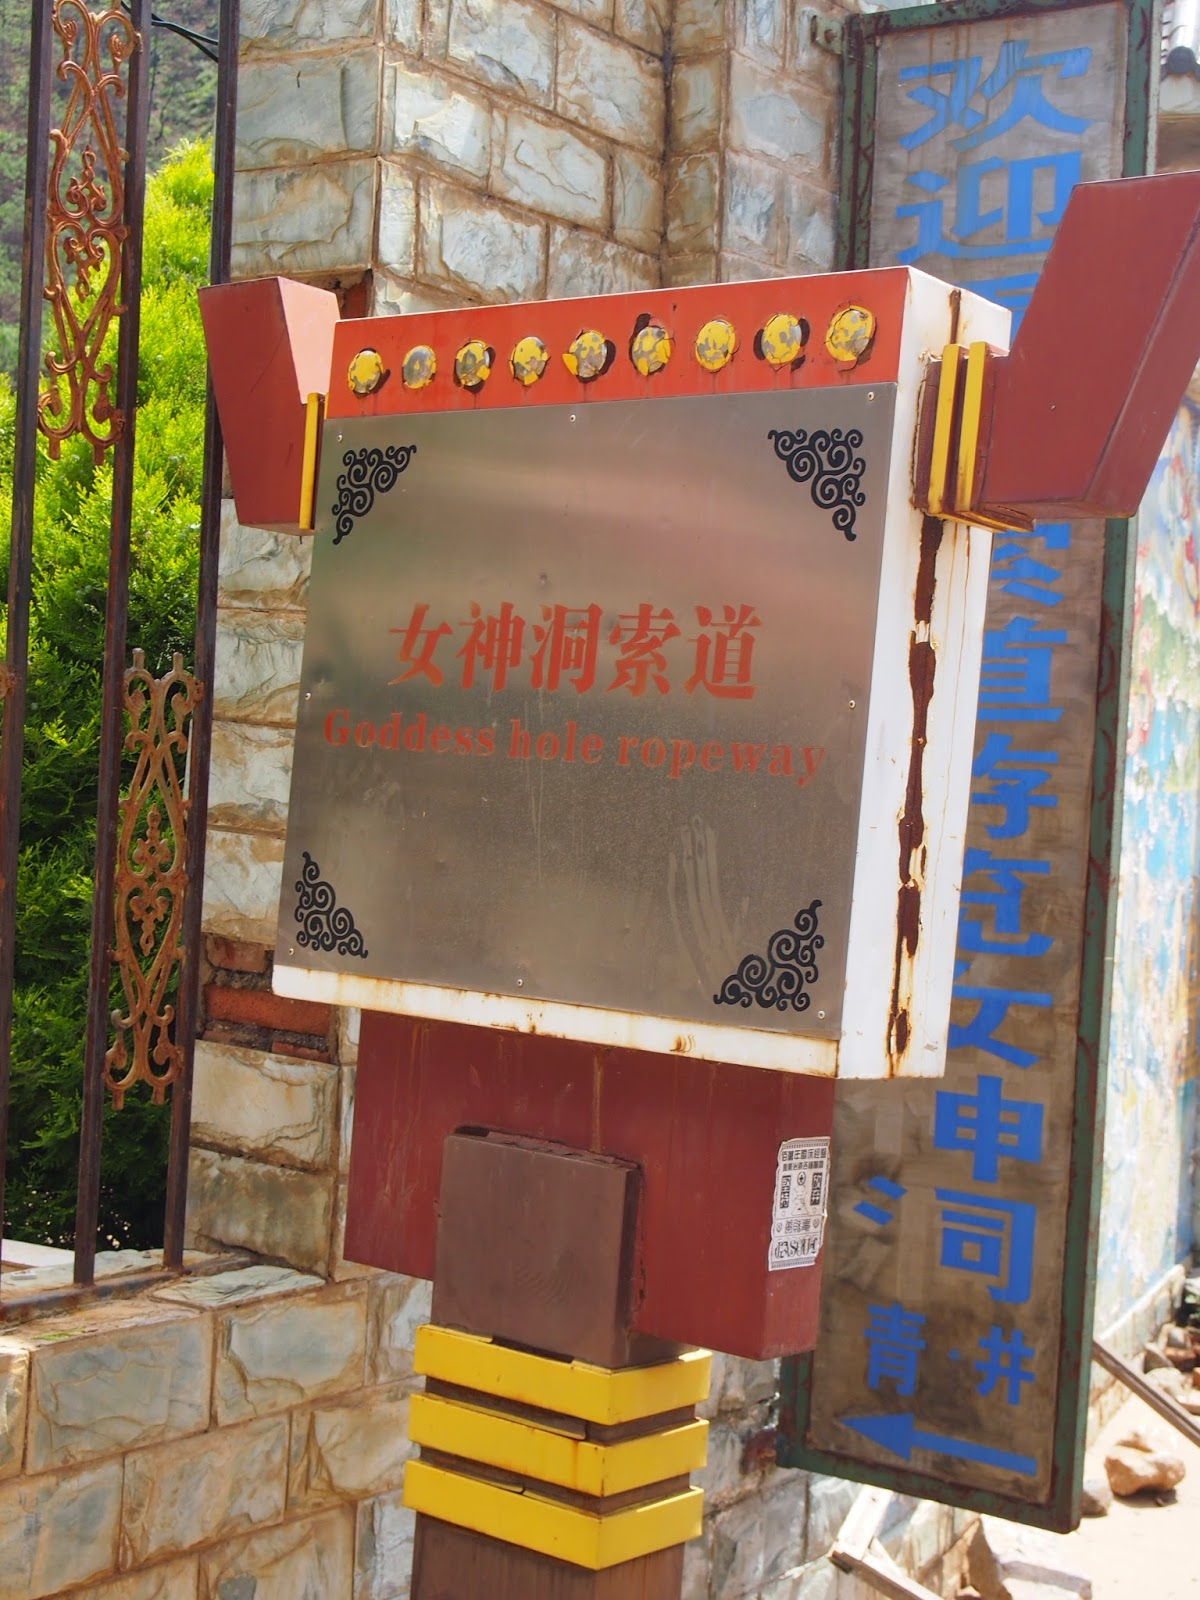 A sign to enter the Goddess Hole Ropeway